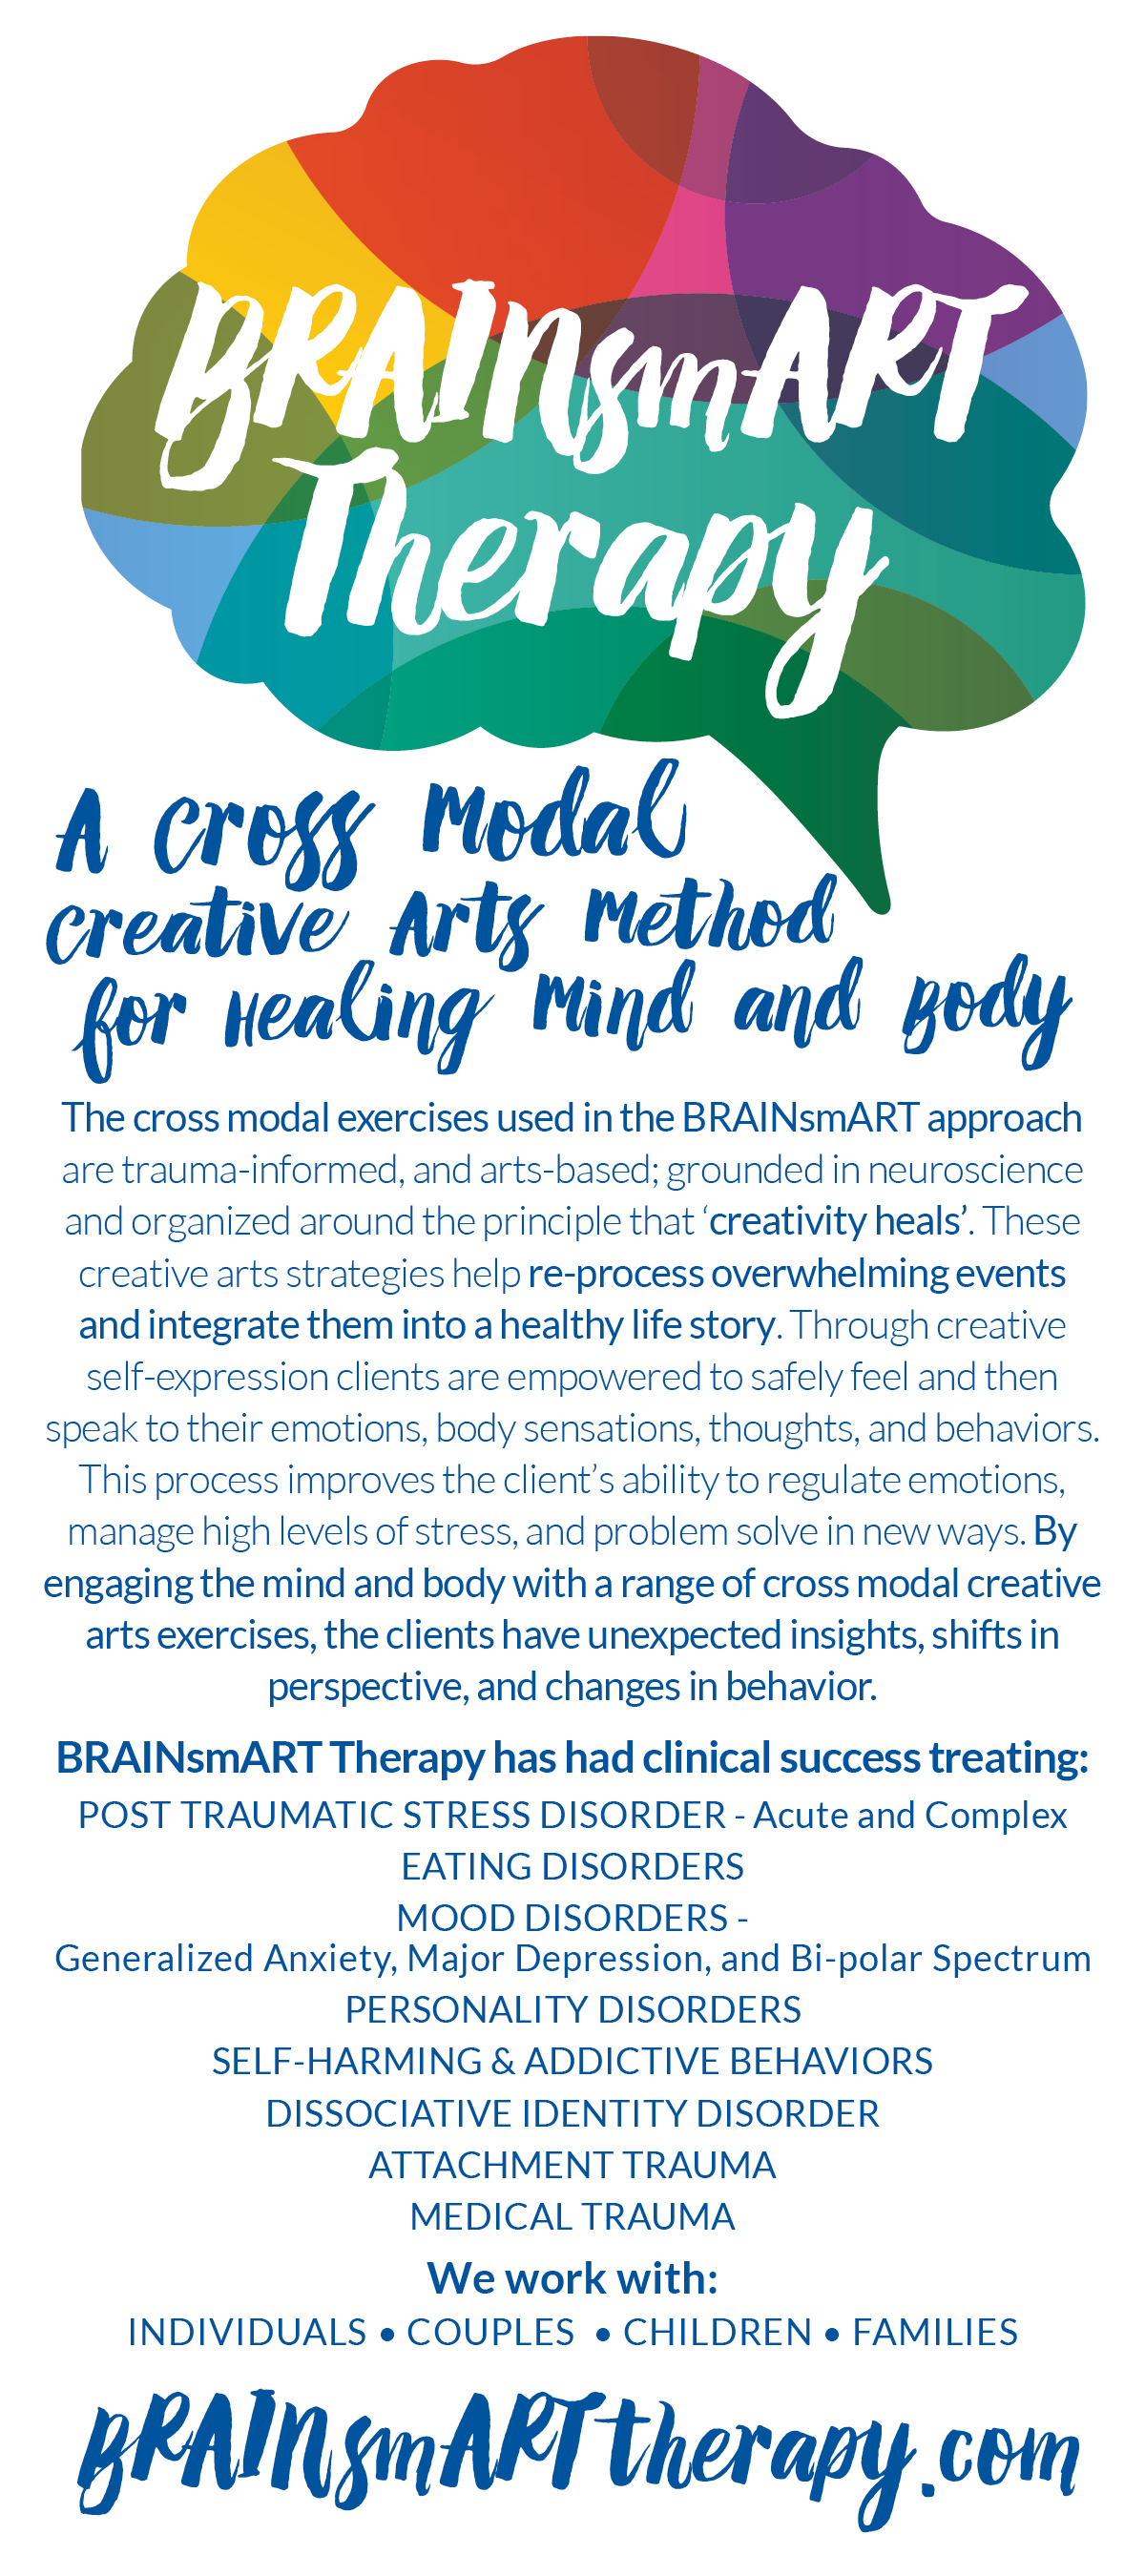 BRAINSMART THERAPY • 4 x 9 RACK CARD  CLIENT: BRAINSMART THERAPY WORK: Adobe InDesign + Illustrator. Co-wrote  copy  with  Nancy Lubow PhD , LPC, MT-BC Logo Design by Kat Moyer Media + Design